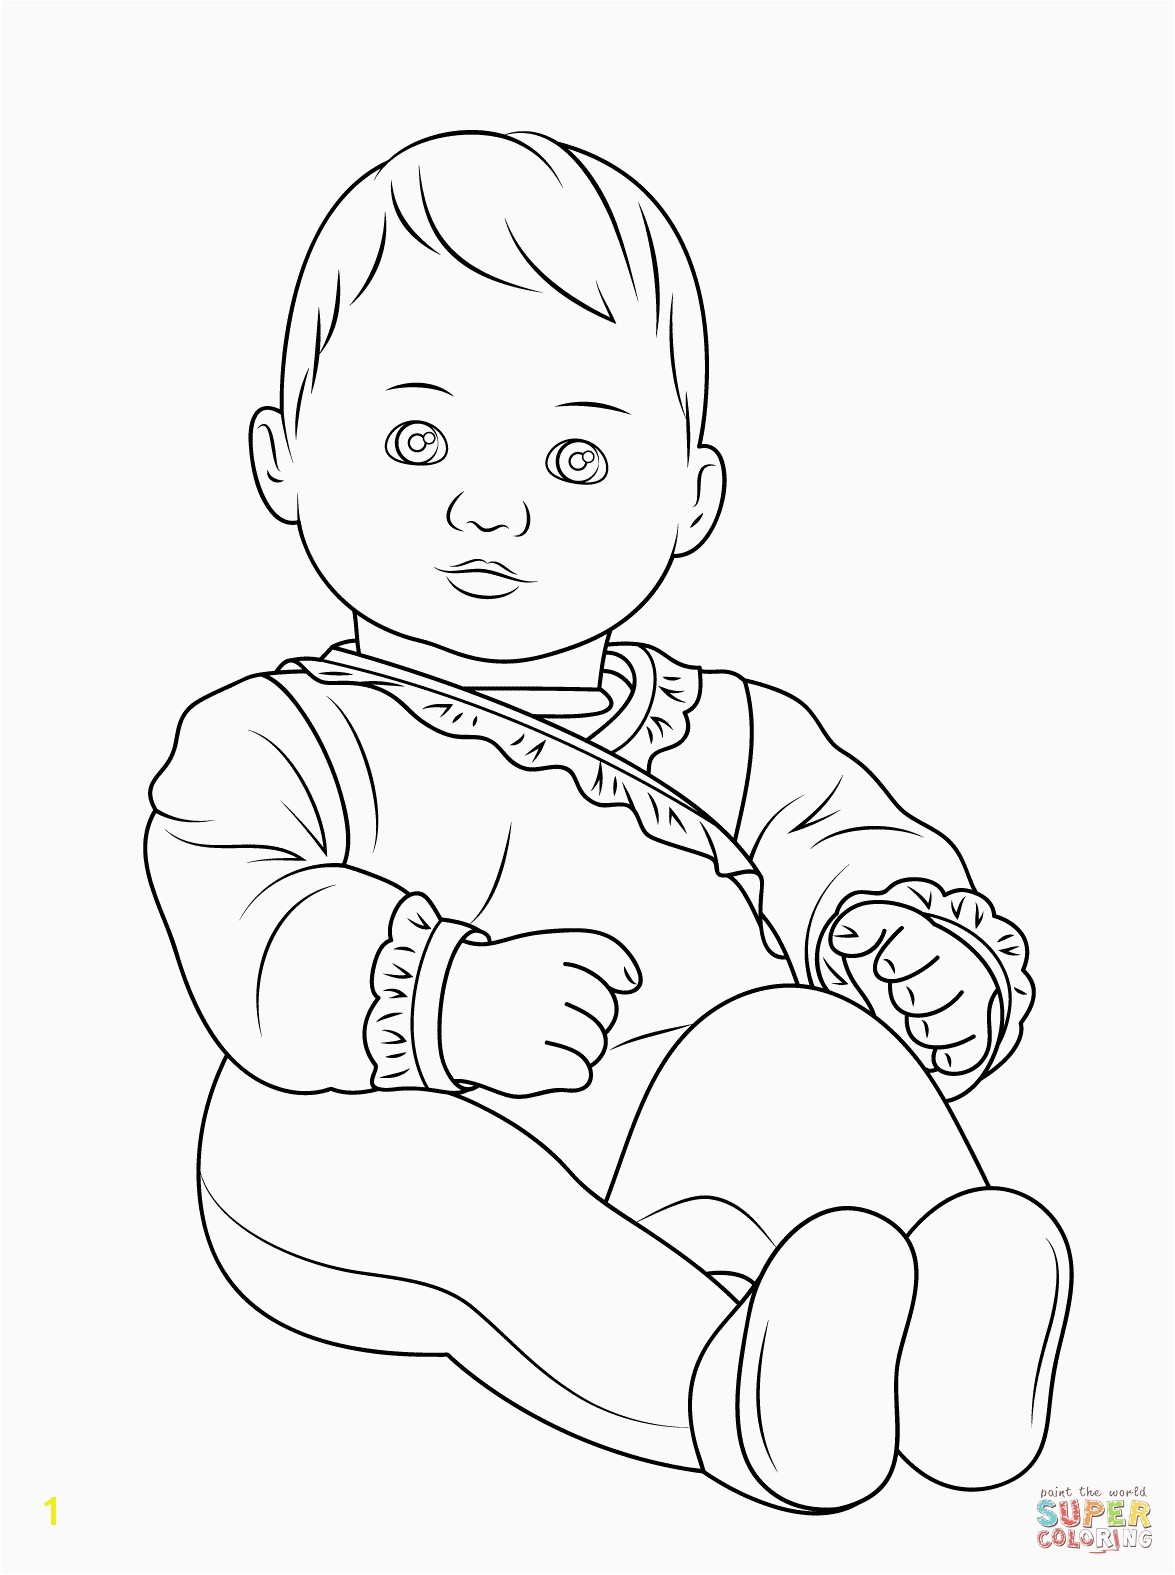 April Showers Coloring Pages Inspirational American Girl Bitty Baby Coloring Page